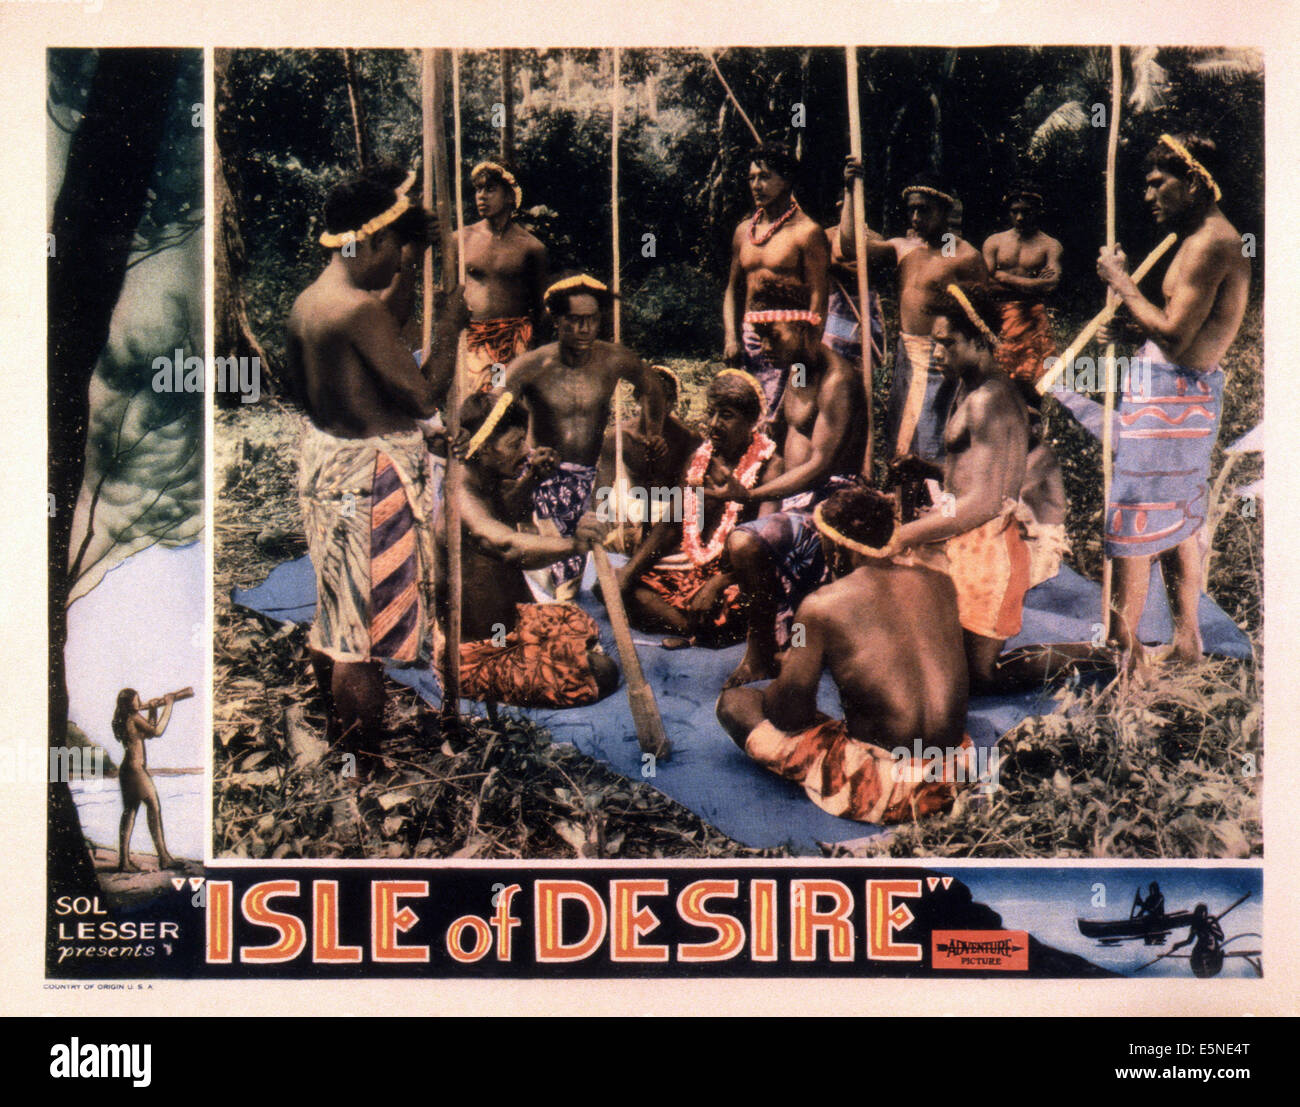 ISLE OF DESIRE, 1930s - Stock Image